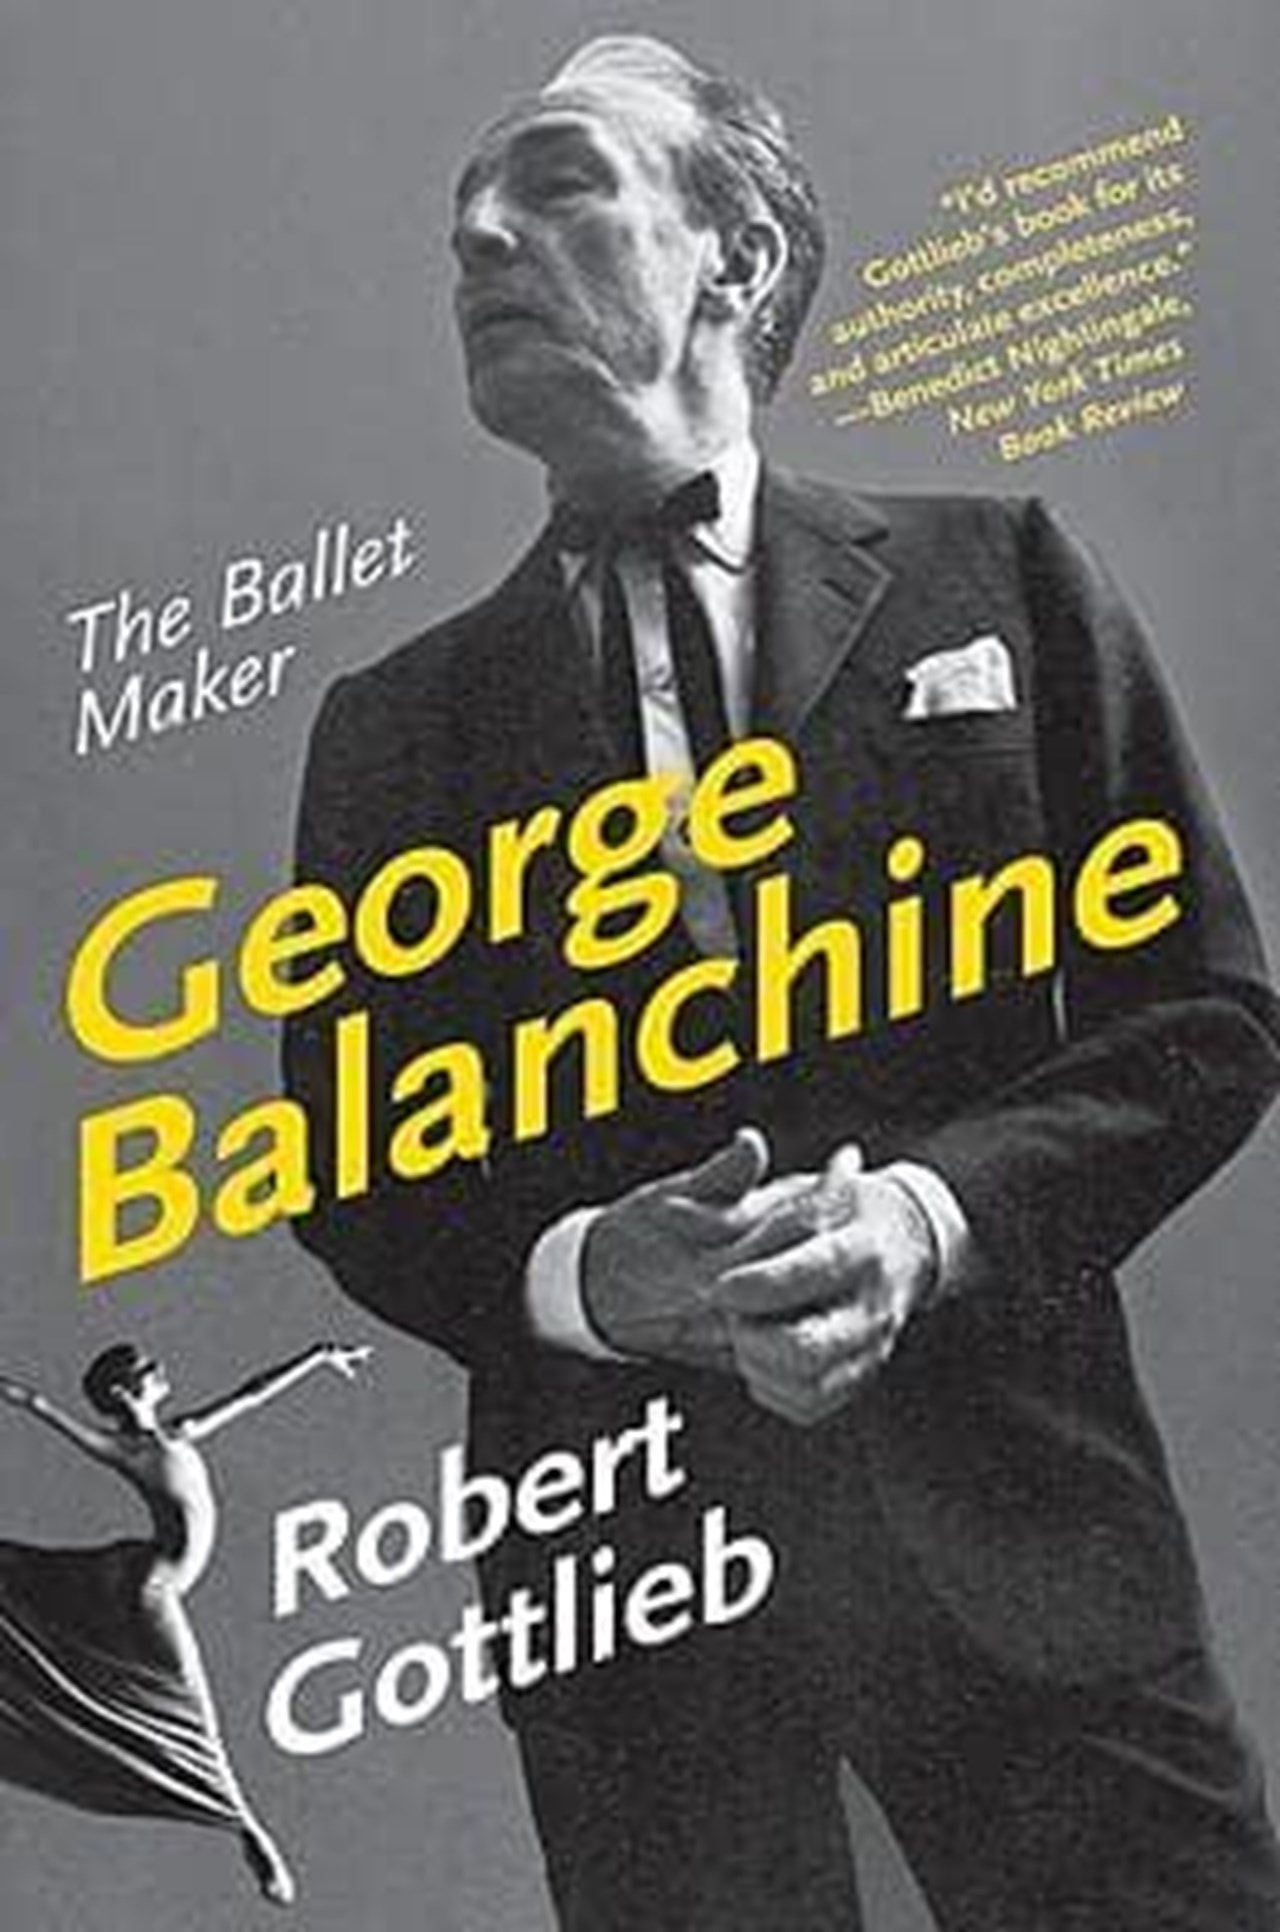 George Balanchine: The Ballet Maker - 1